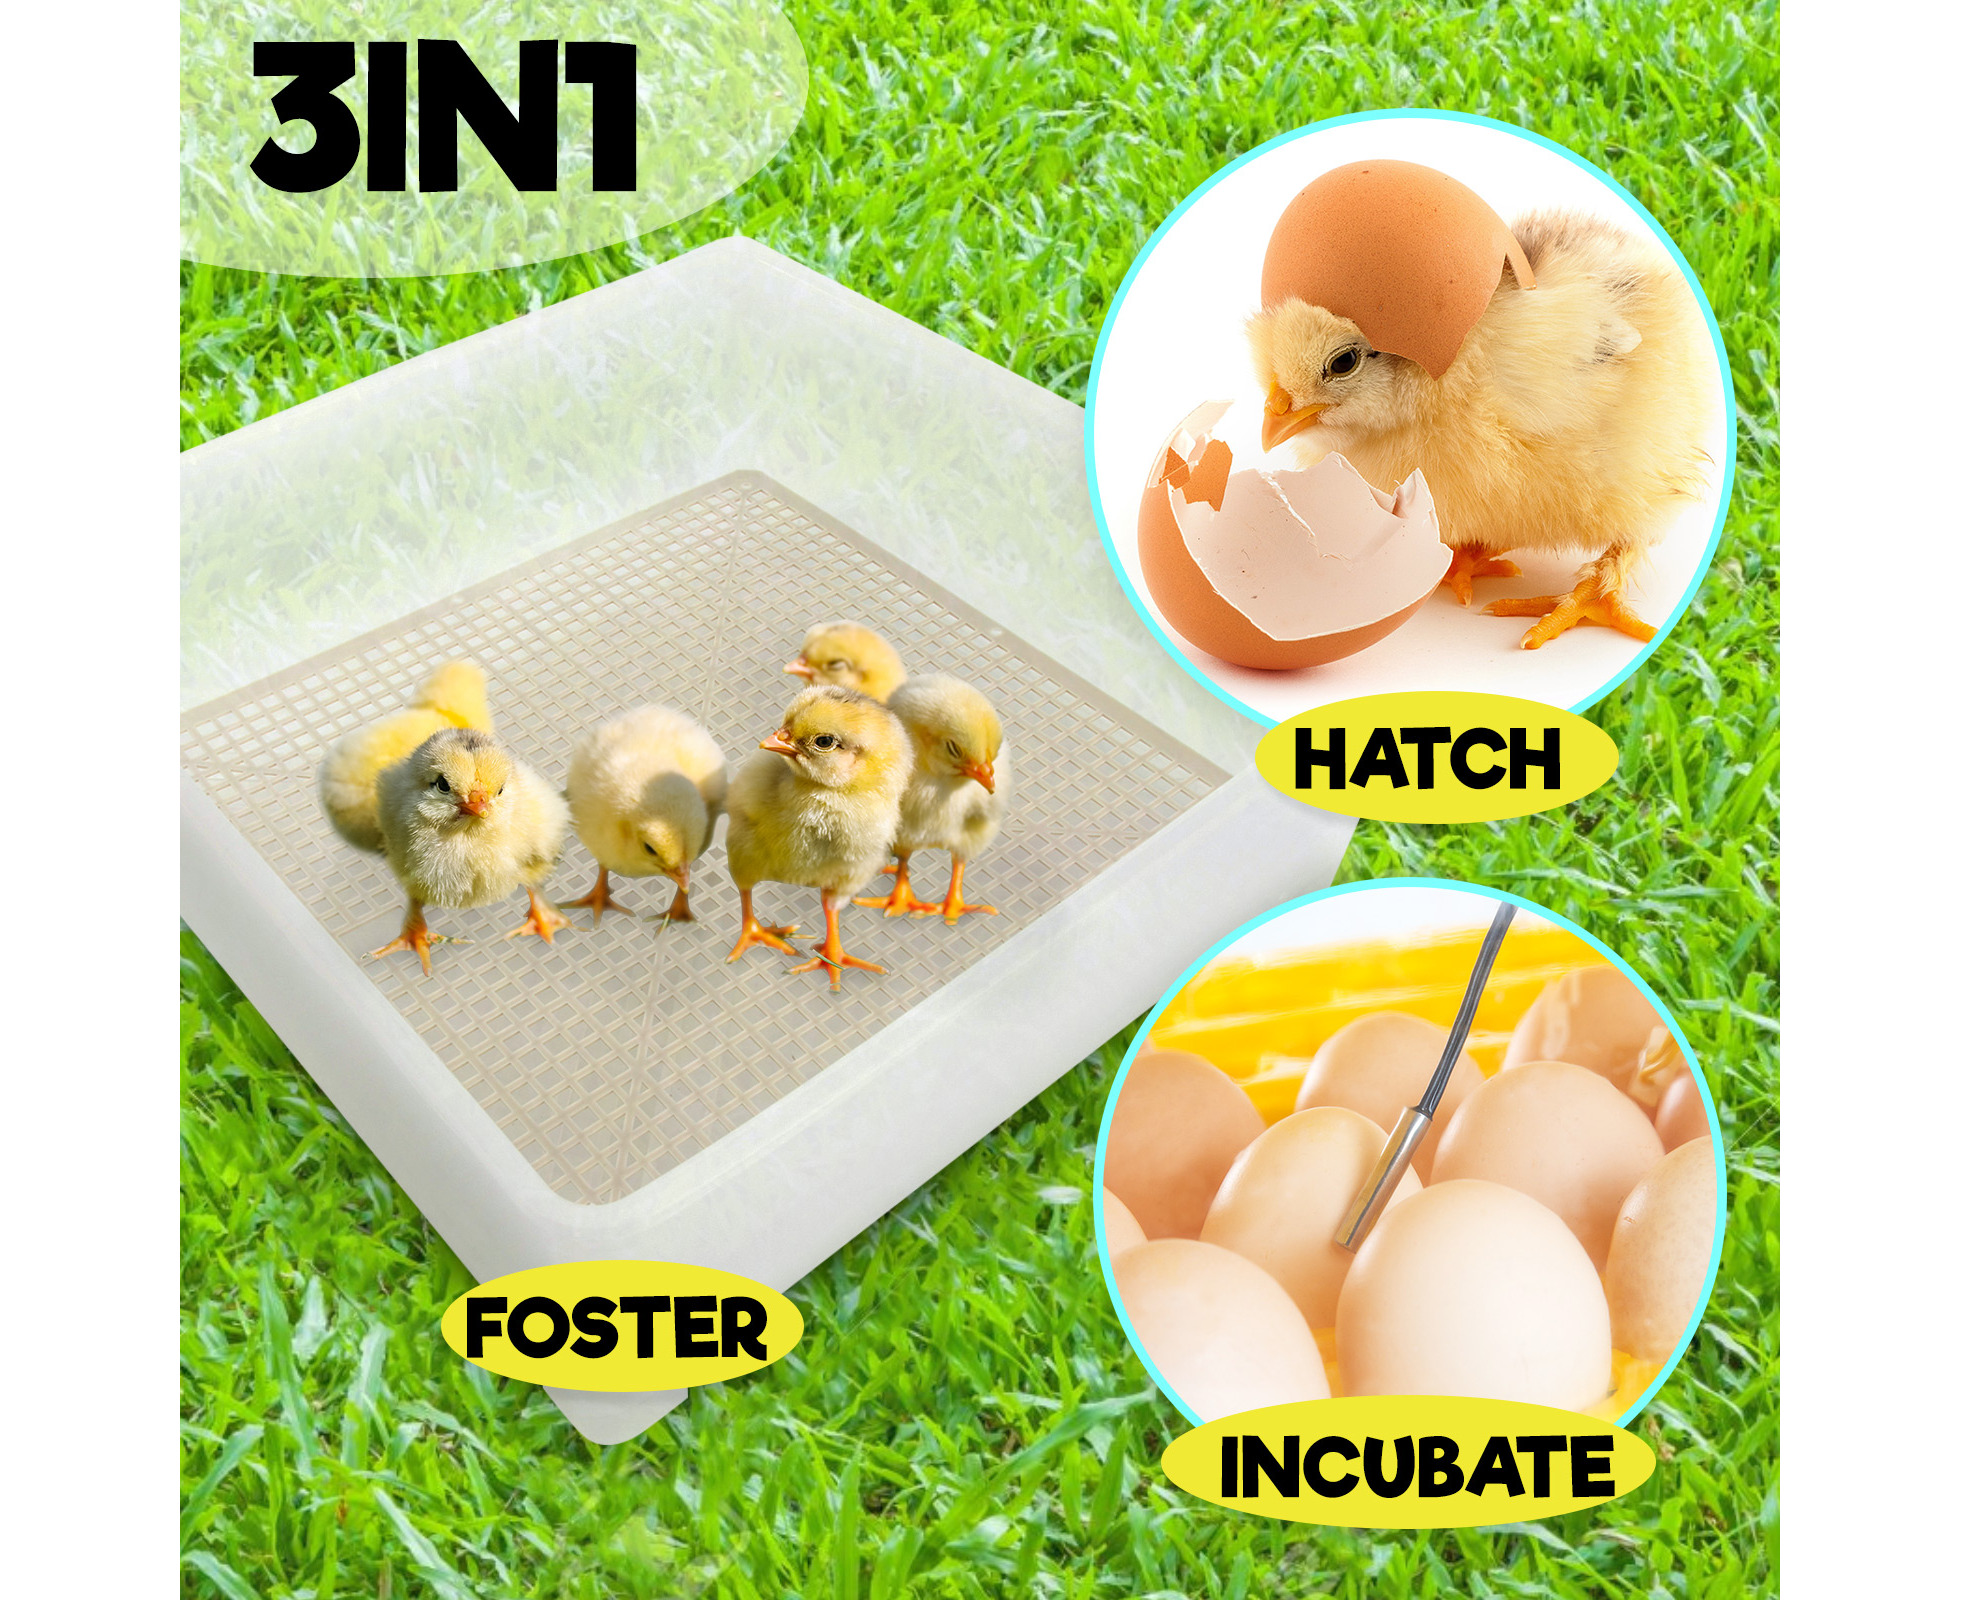 LADIES HALF A HATCHING CHICK ON EACH FOOT DOUBLE SIDED EGG SOCKS ONE SIZE